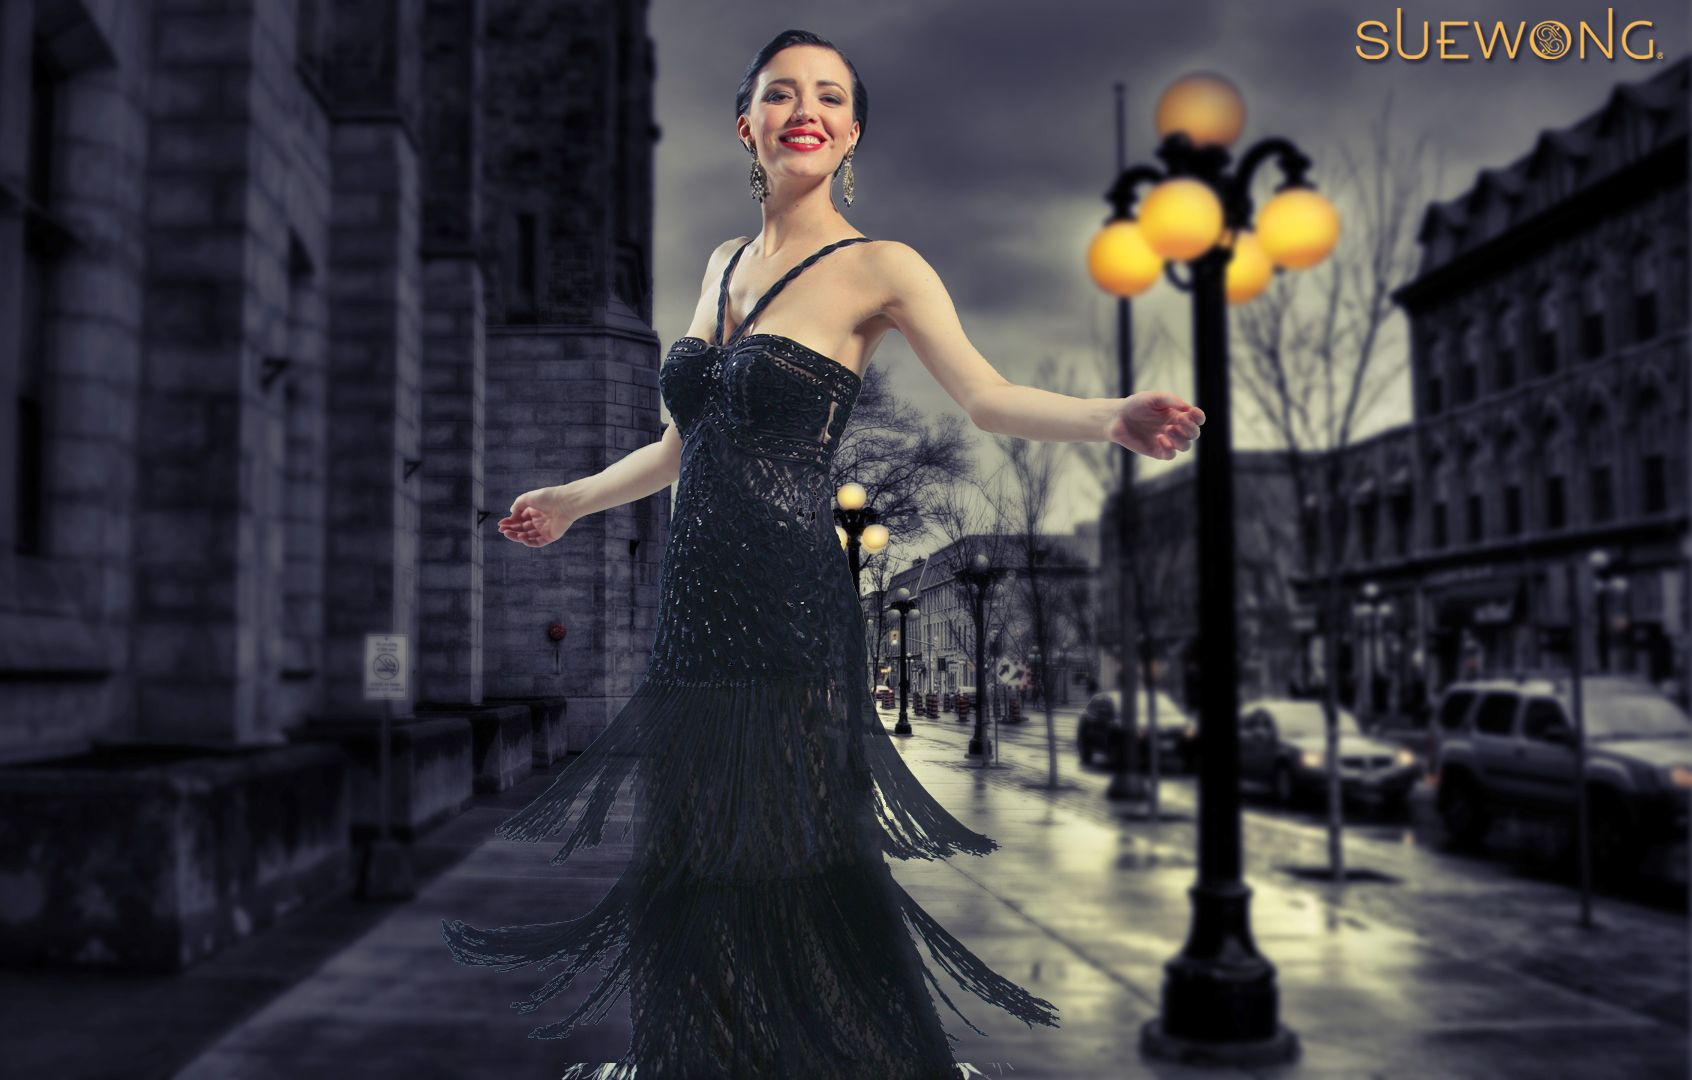 Sue Wong v-strapped gown with embroidered and beaded bodice and tiered fringe skirt… #teamsuewong #suewong #fashion #coutureinspired #picoftheday #glamorous #colorful